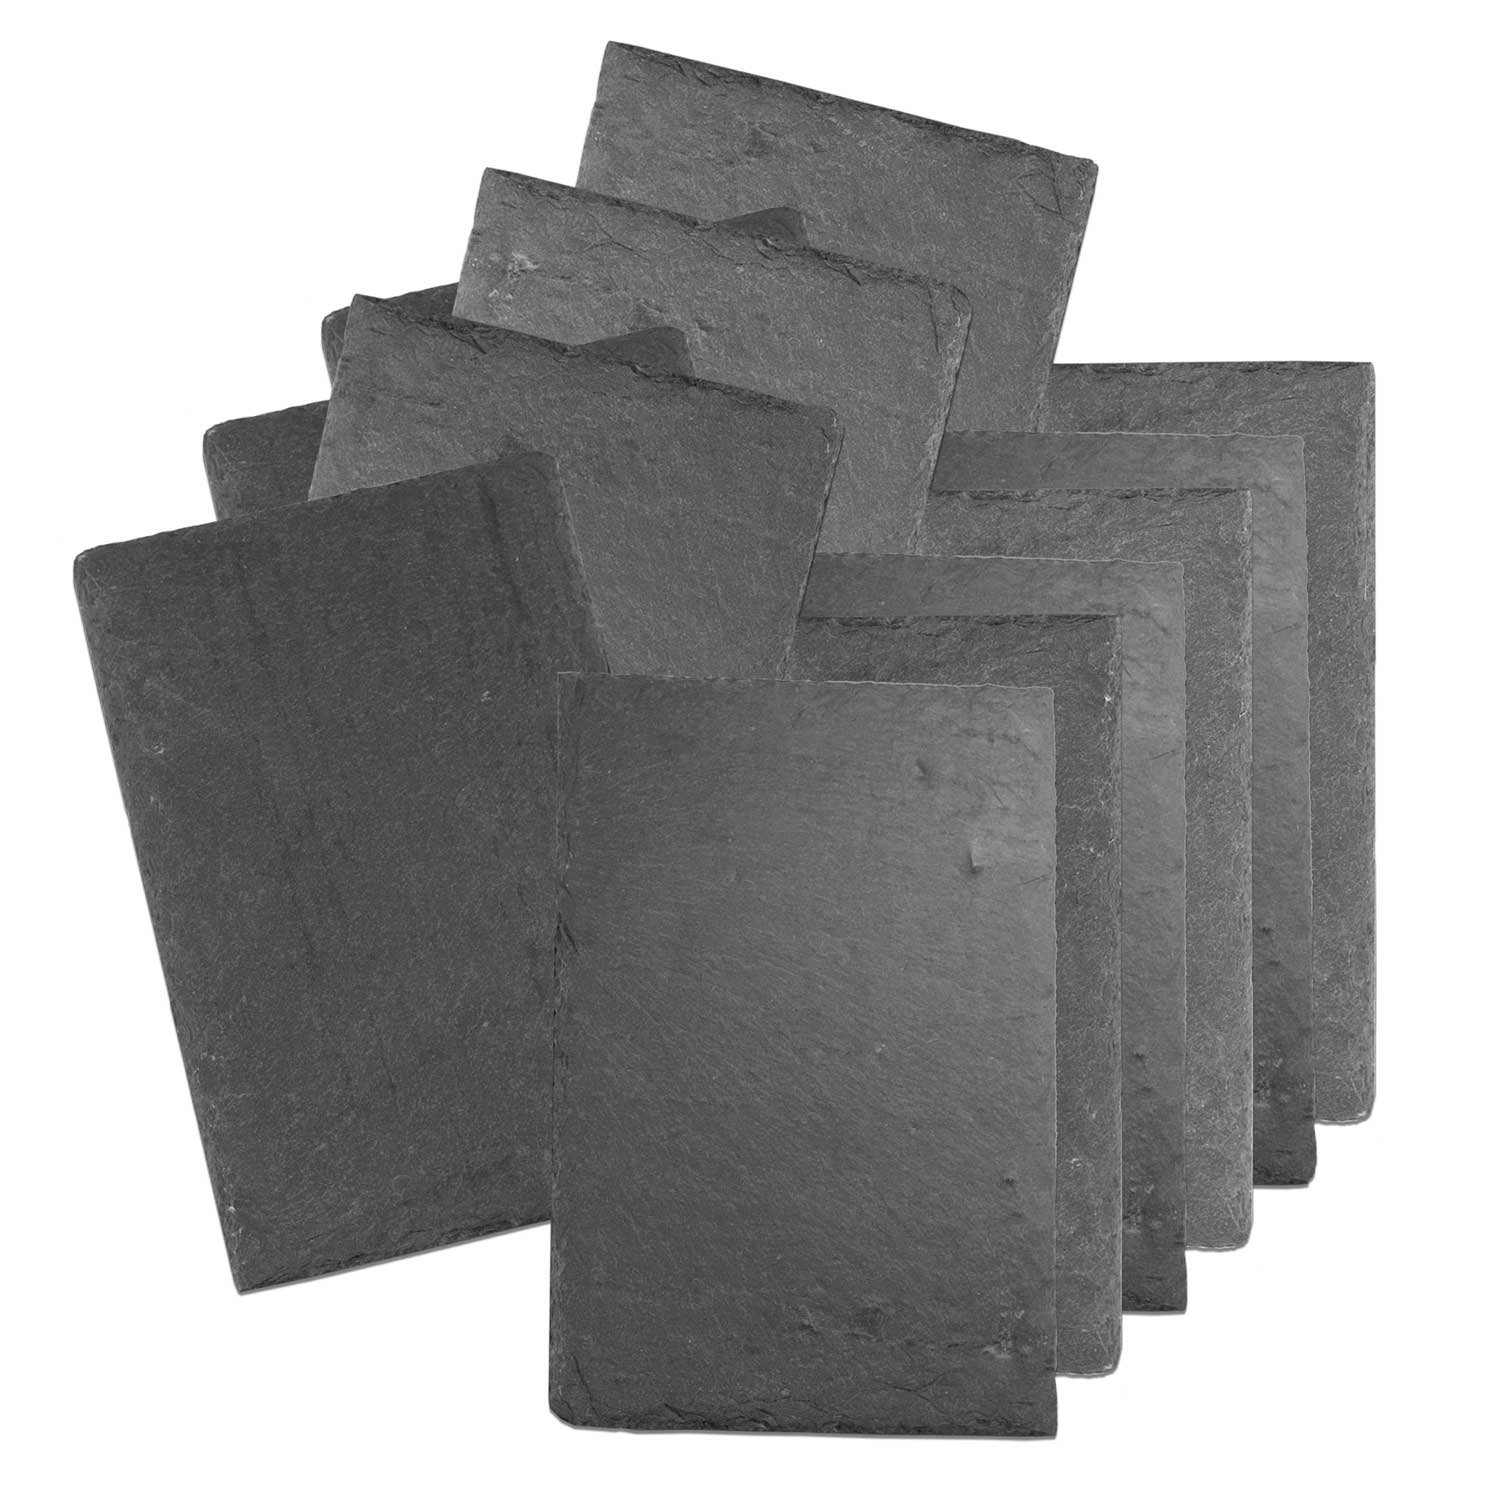 Cohas Slate Food and Cheese Platter Restaurant Pack includes 12 Medium 8 by 12 Inch Boards, Undrilled Gray Slate